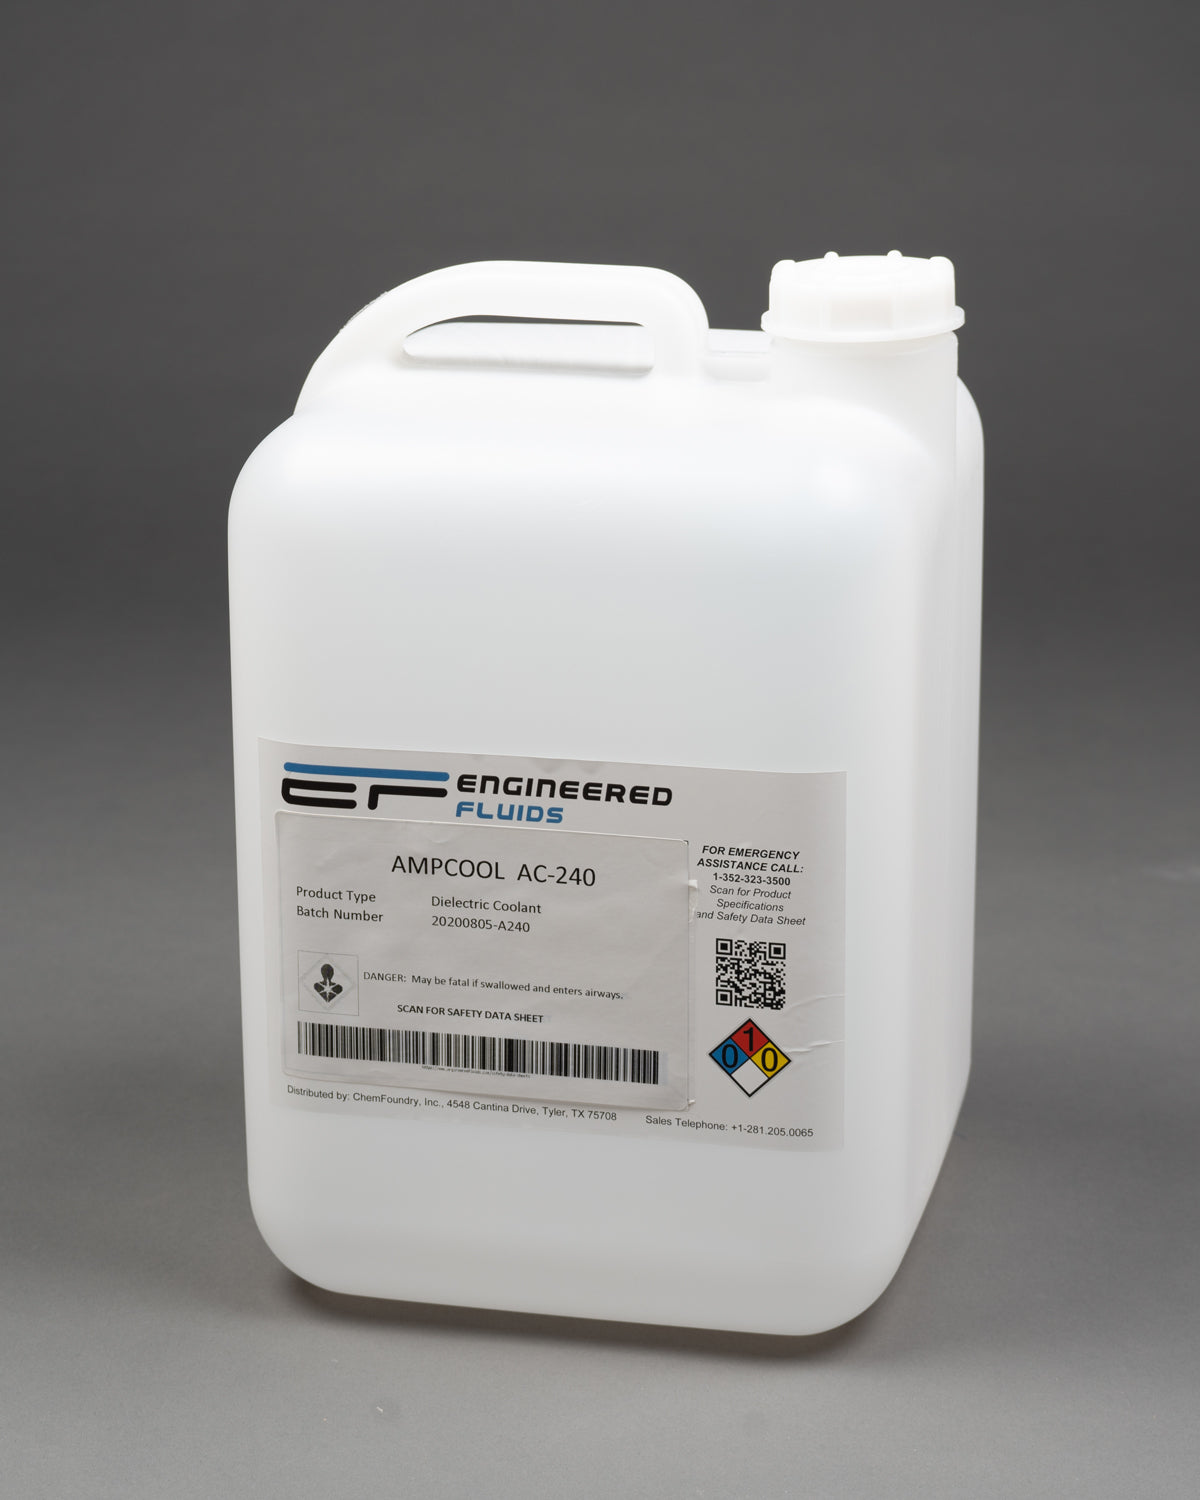 AmpCool® AC-240 Dielectric Coolant & Lubricant